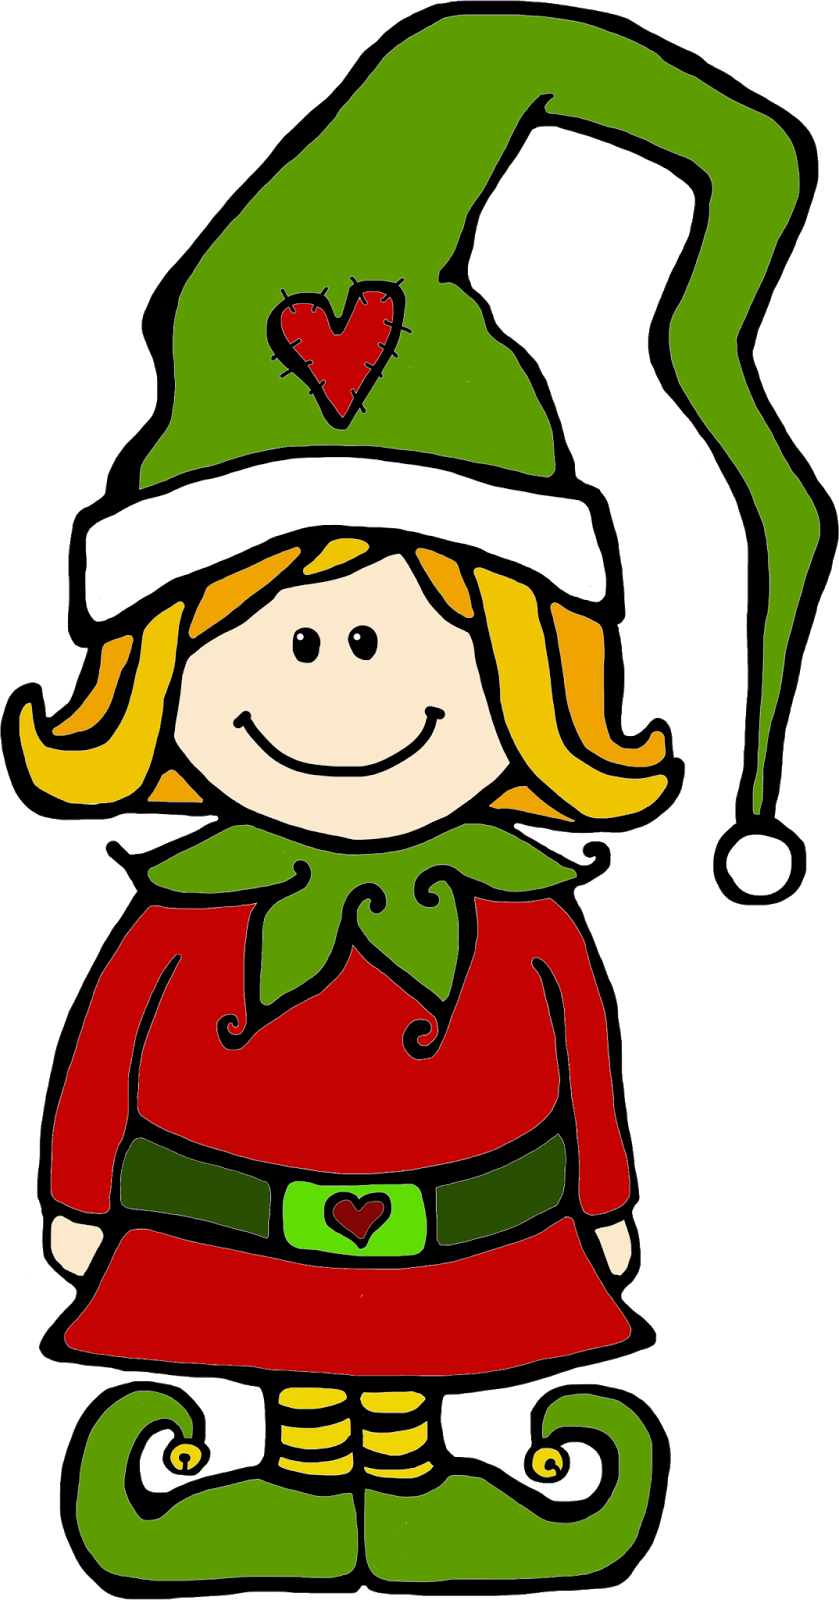 Elf clipart workshop. Image result for whimsy